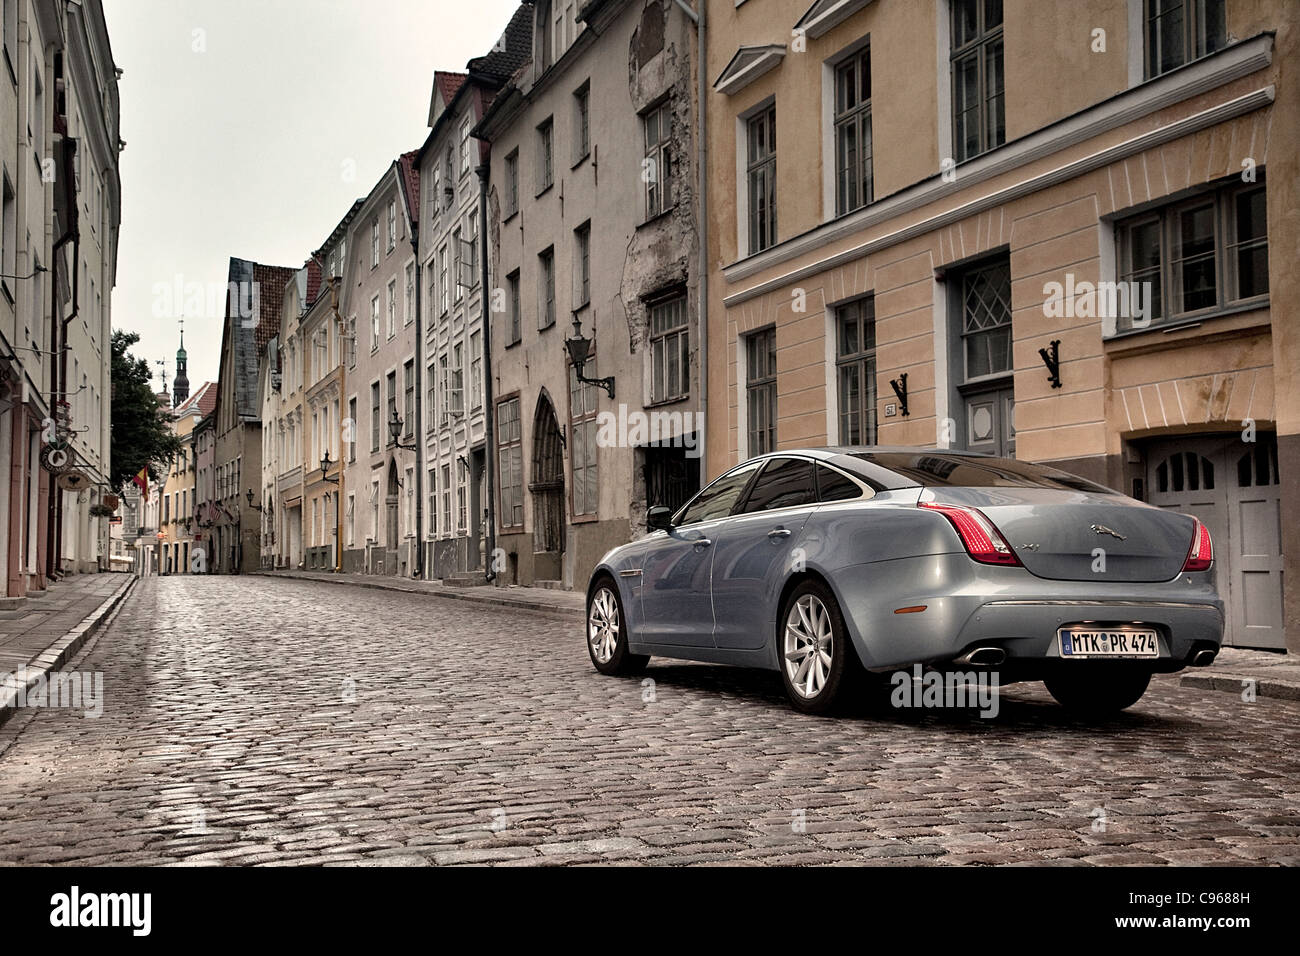 Jaguar XJ in the Old Town Tallinn Estonia - Stock Image